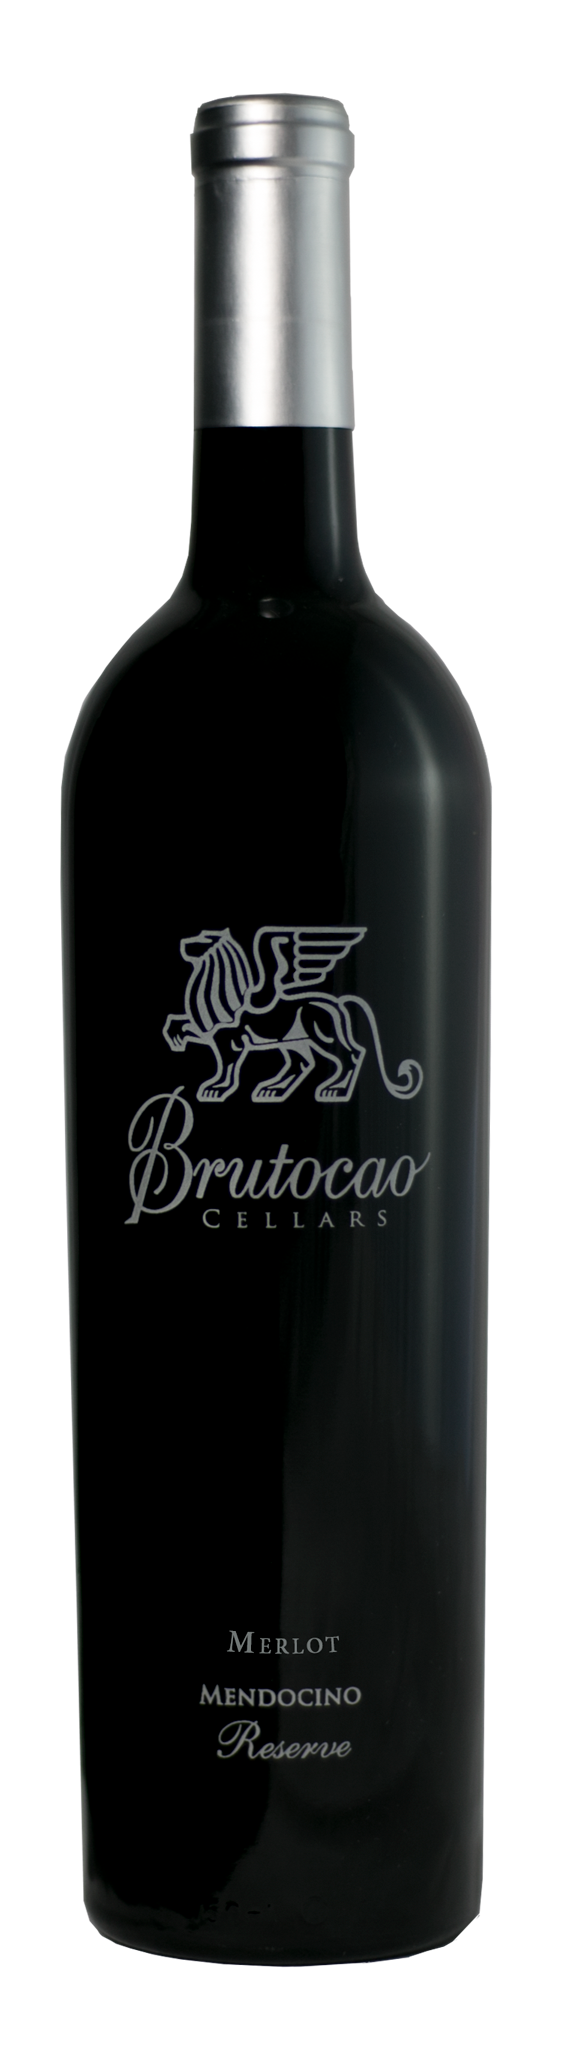 2013 Reserve Merlot, Estate Bottled (750ml)